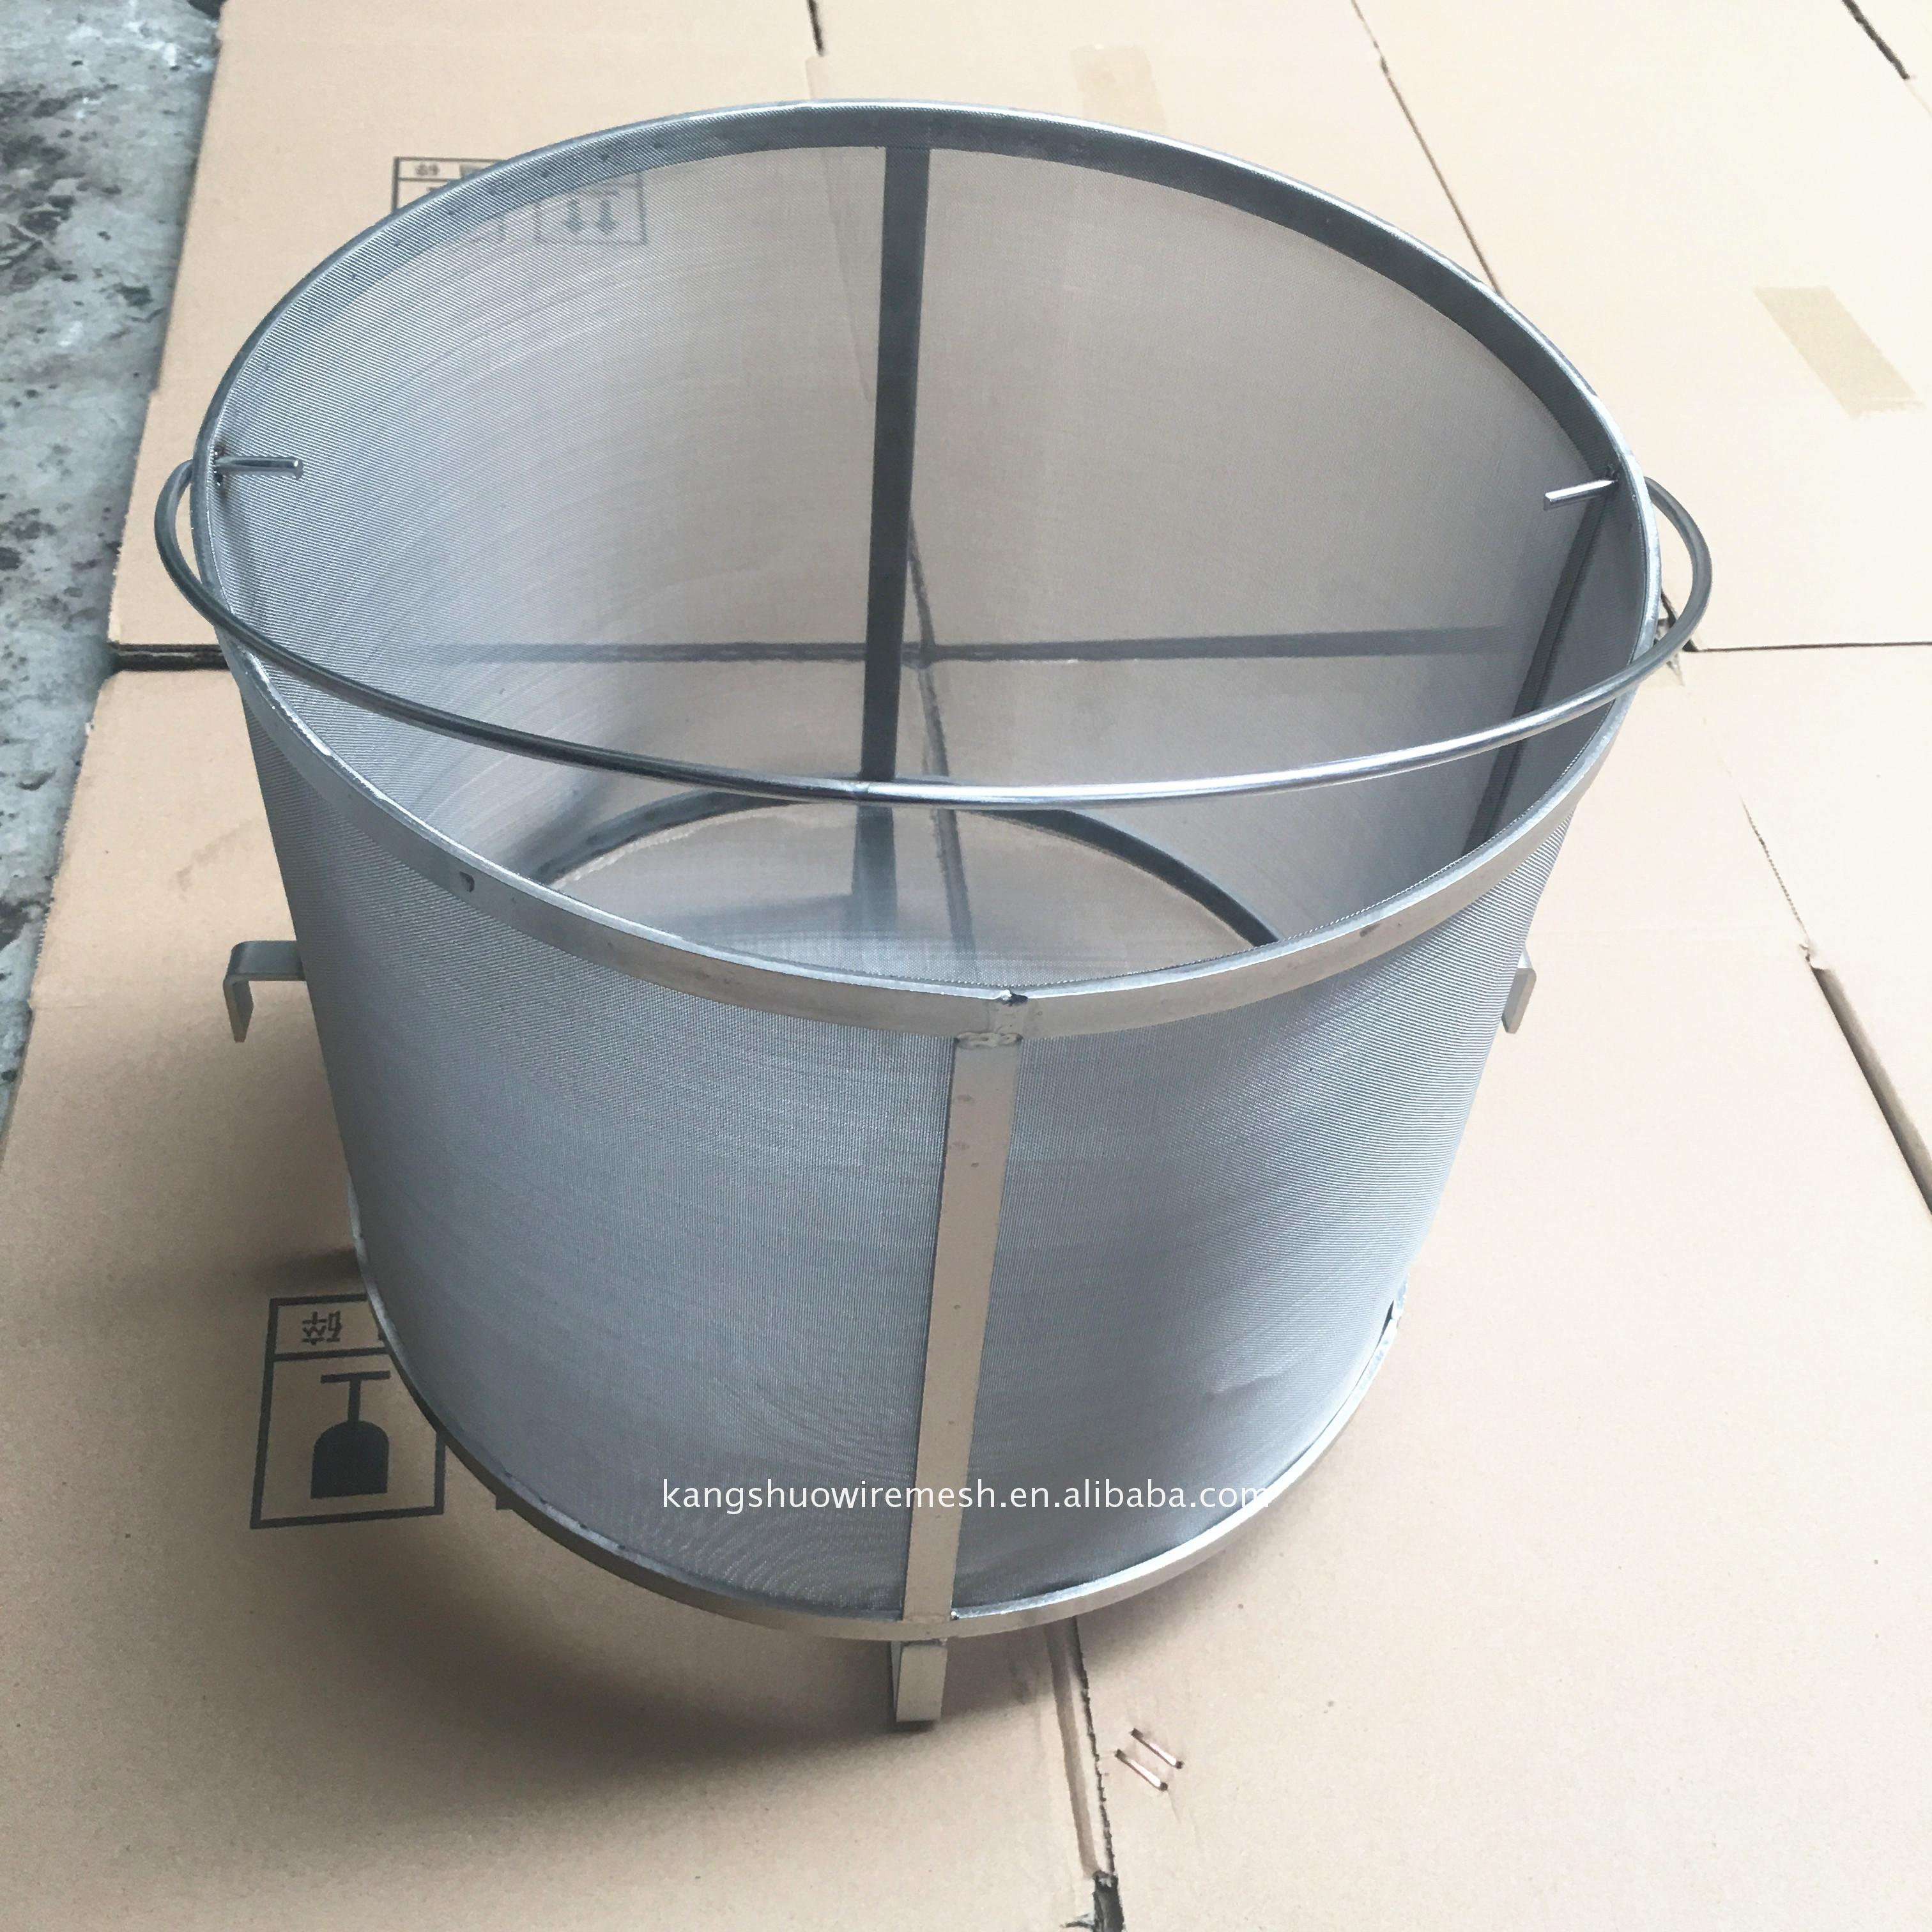 Factory Supplier 304 stainless steel hop grain basket